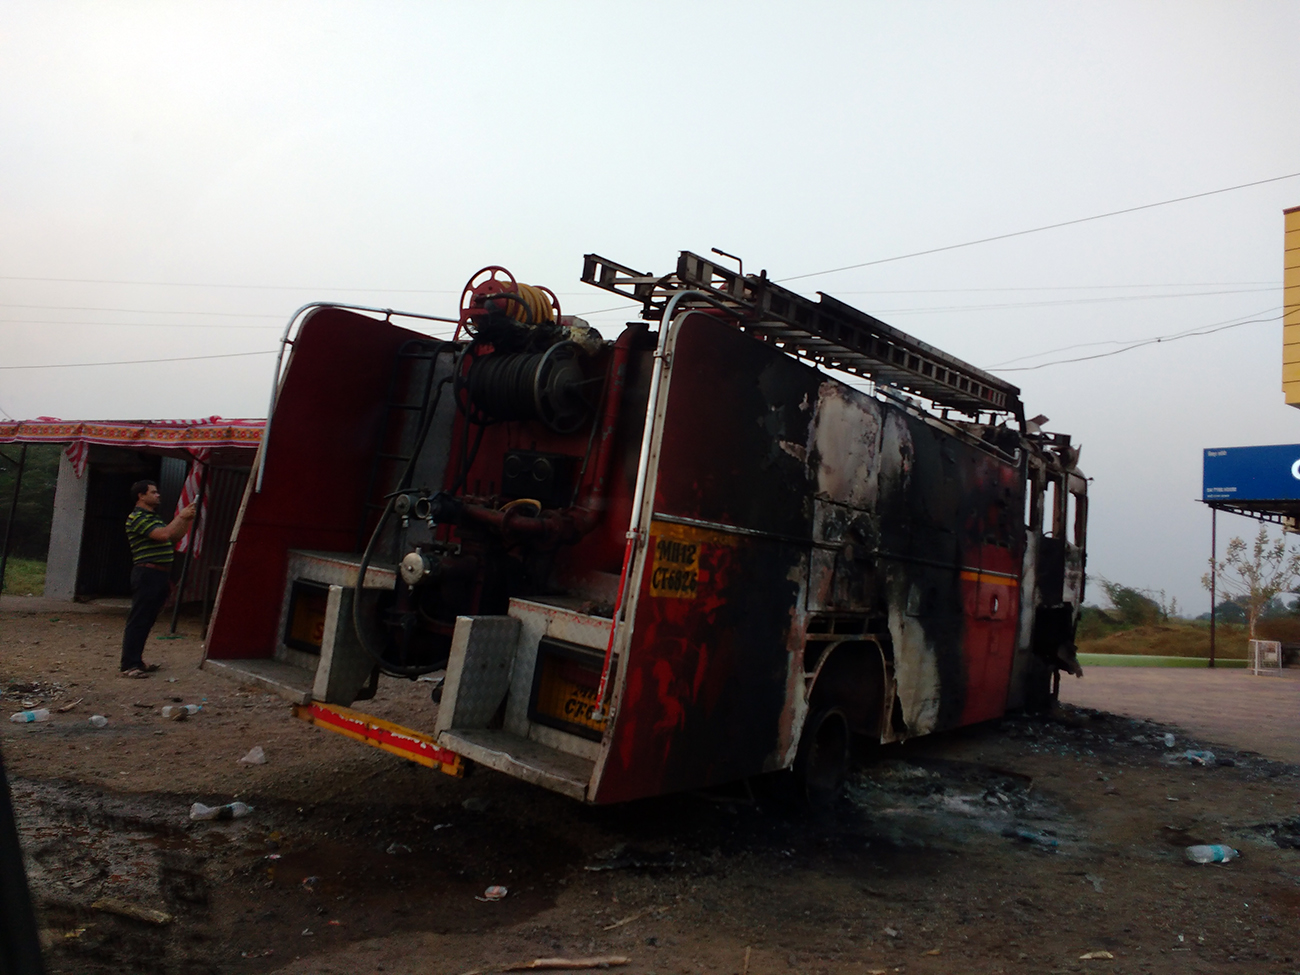 A burnt fire engine at Sanaswadi, just north of Koregaon Bhima. Photo: Mridula Chari